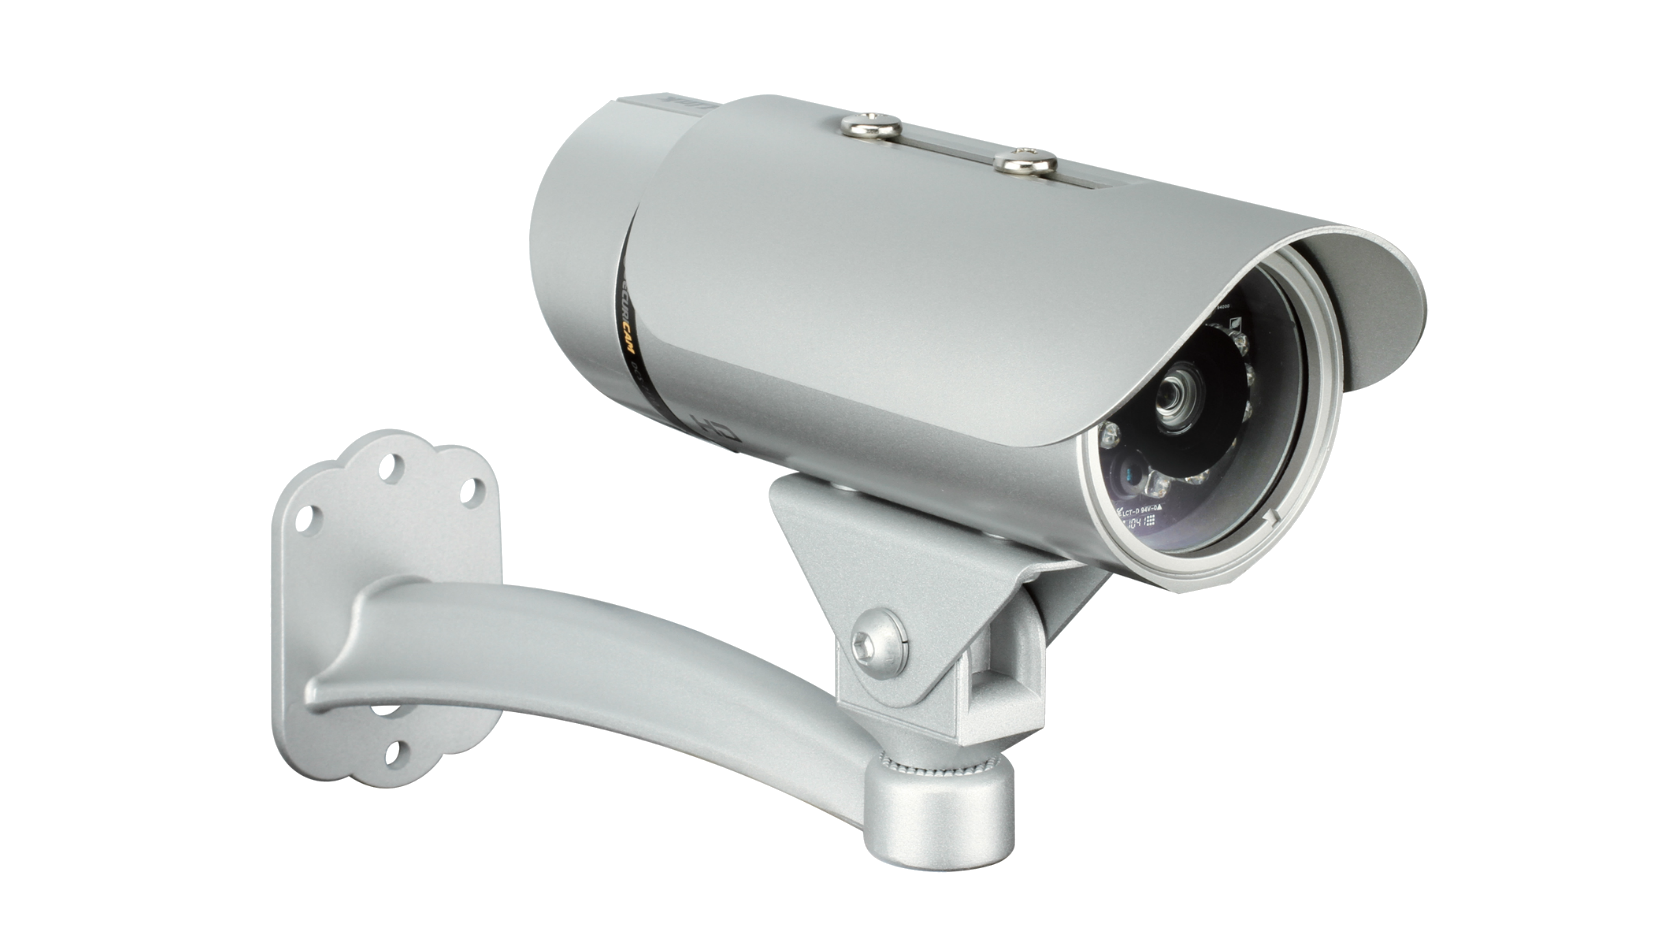 Outdoor Full HD PoE Day/Night Fixed Bullet Network Camera - Outdoor PNG HD